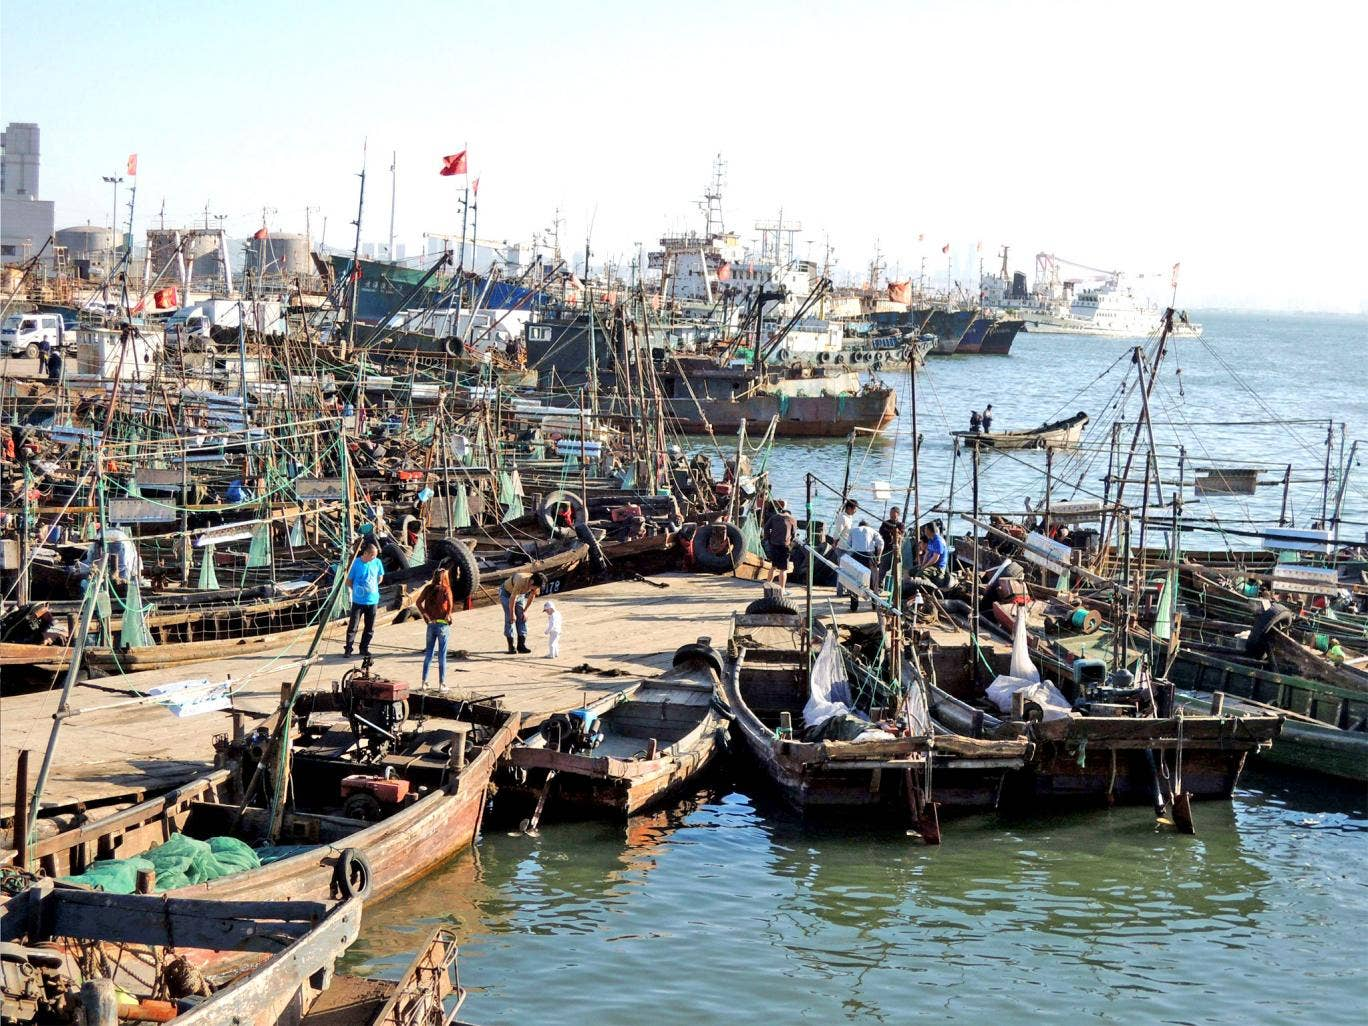 The fishing village at Dalian Bay, where a Chinese fishing boat was detained